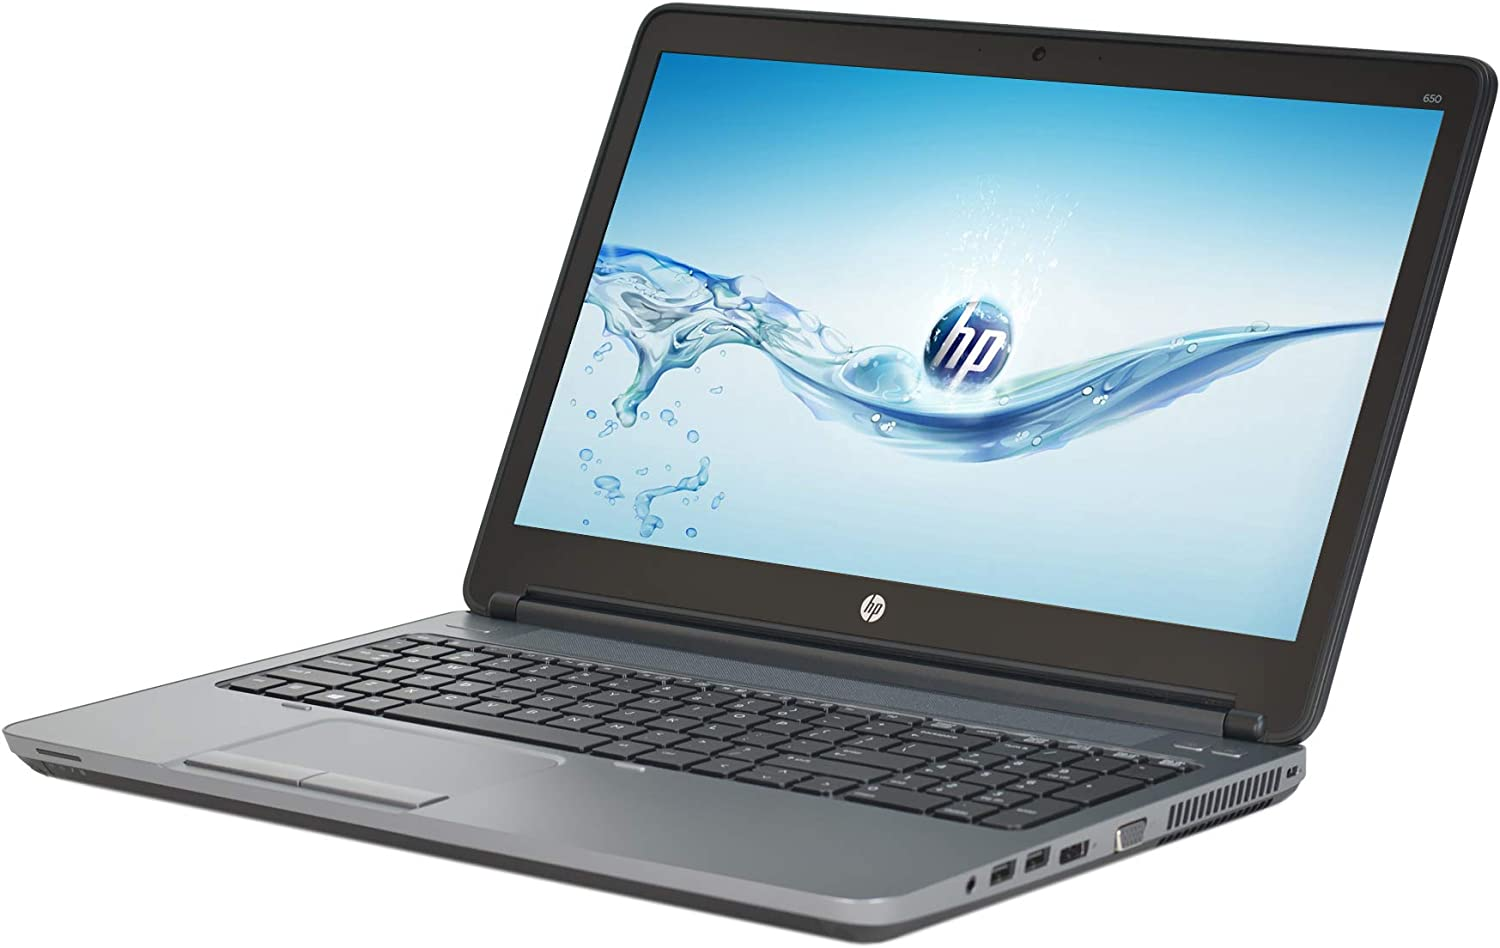 HP ProBook 650 G1 15.6in Laptop, Core i5-4300M 2.6GHz, 8GB Ram, 500GB HDD, DVDRW, Windows 10 Pro 64bit, Webcam (Renewed)